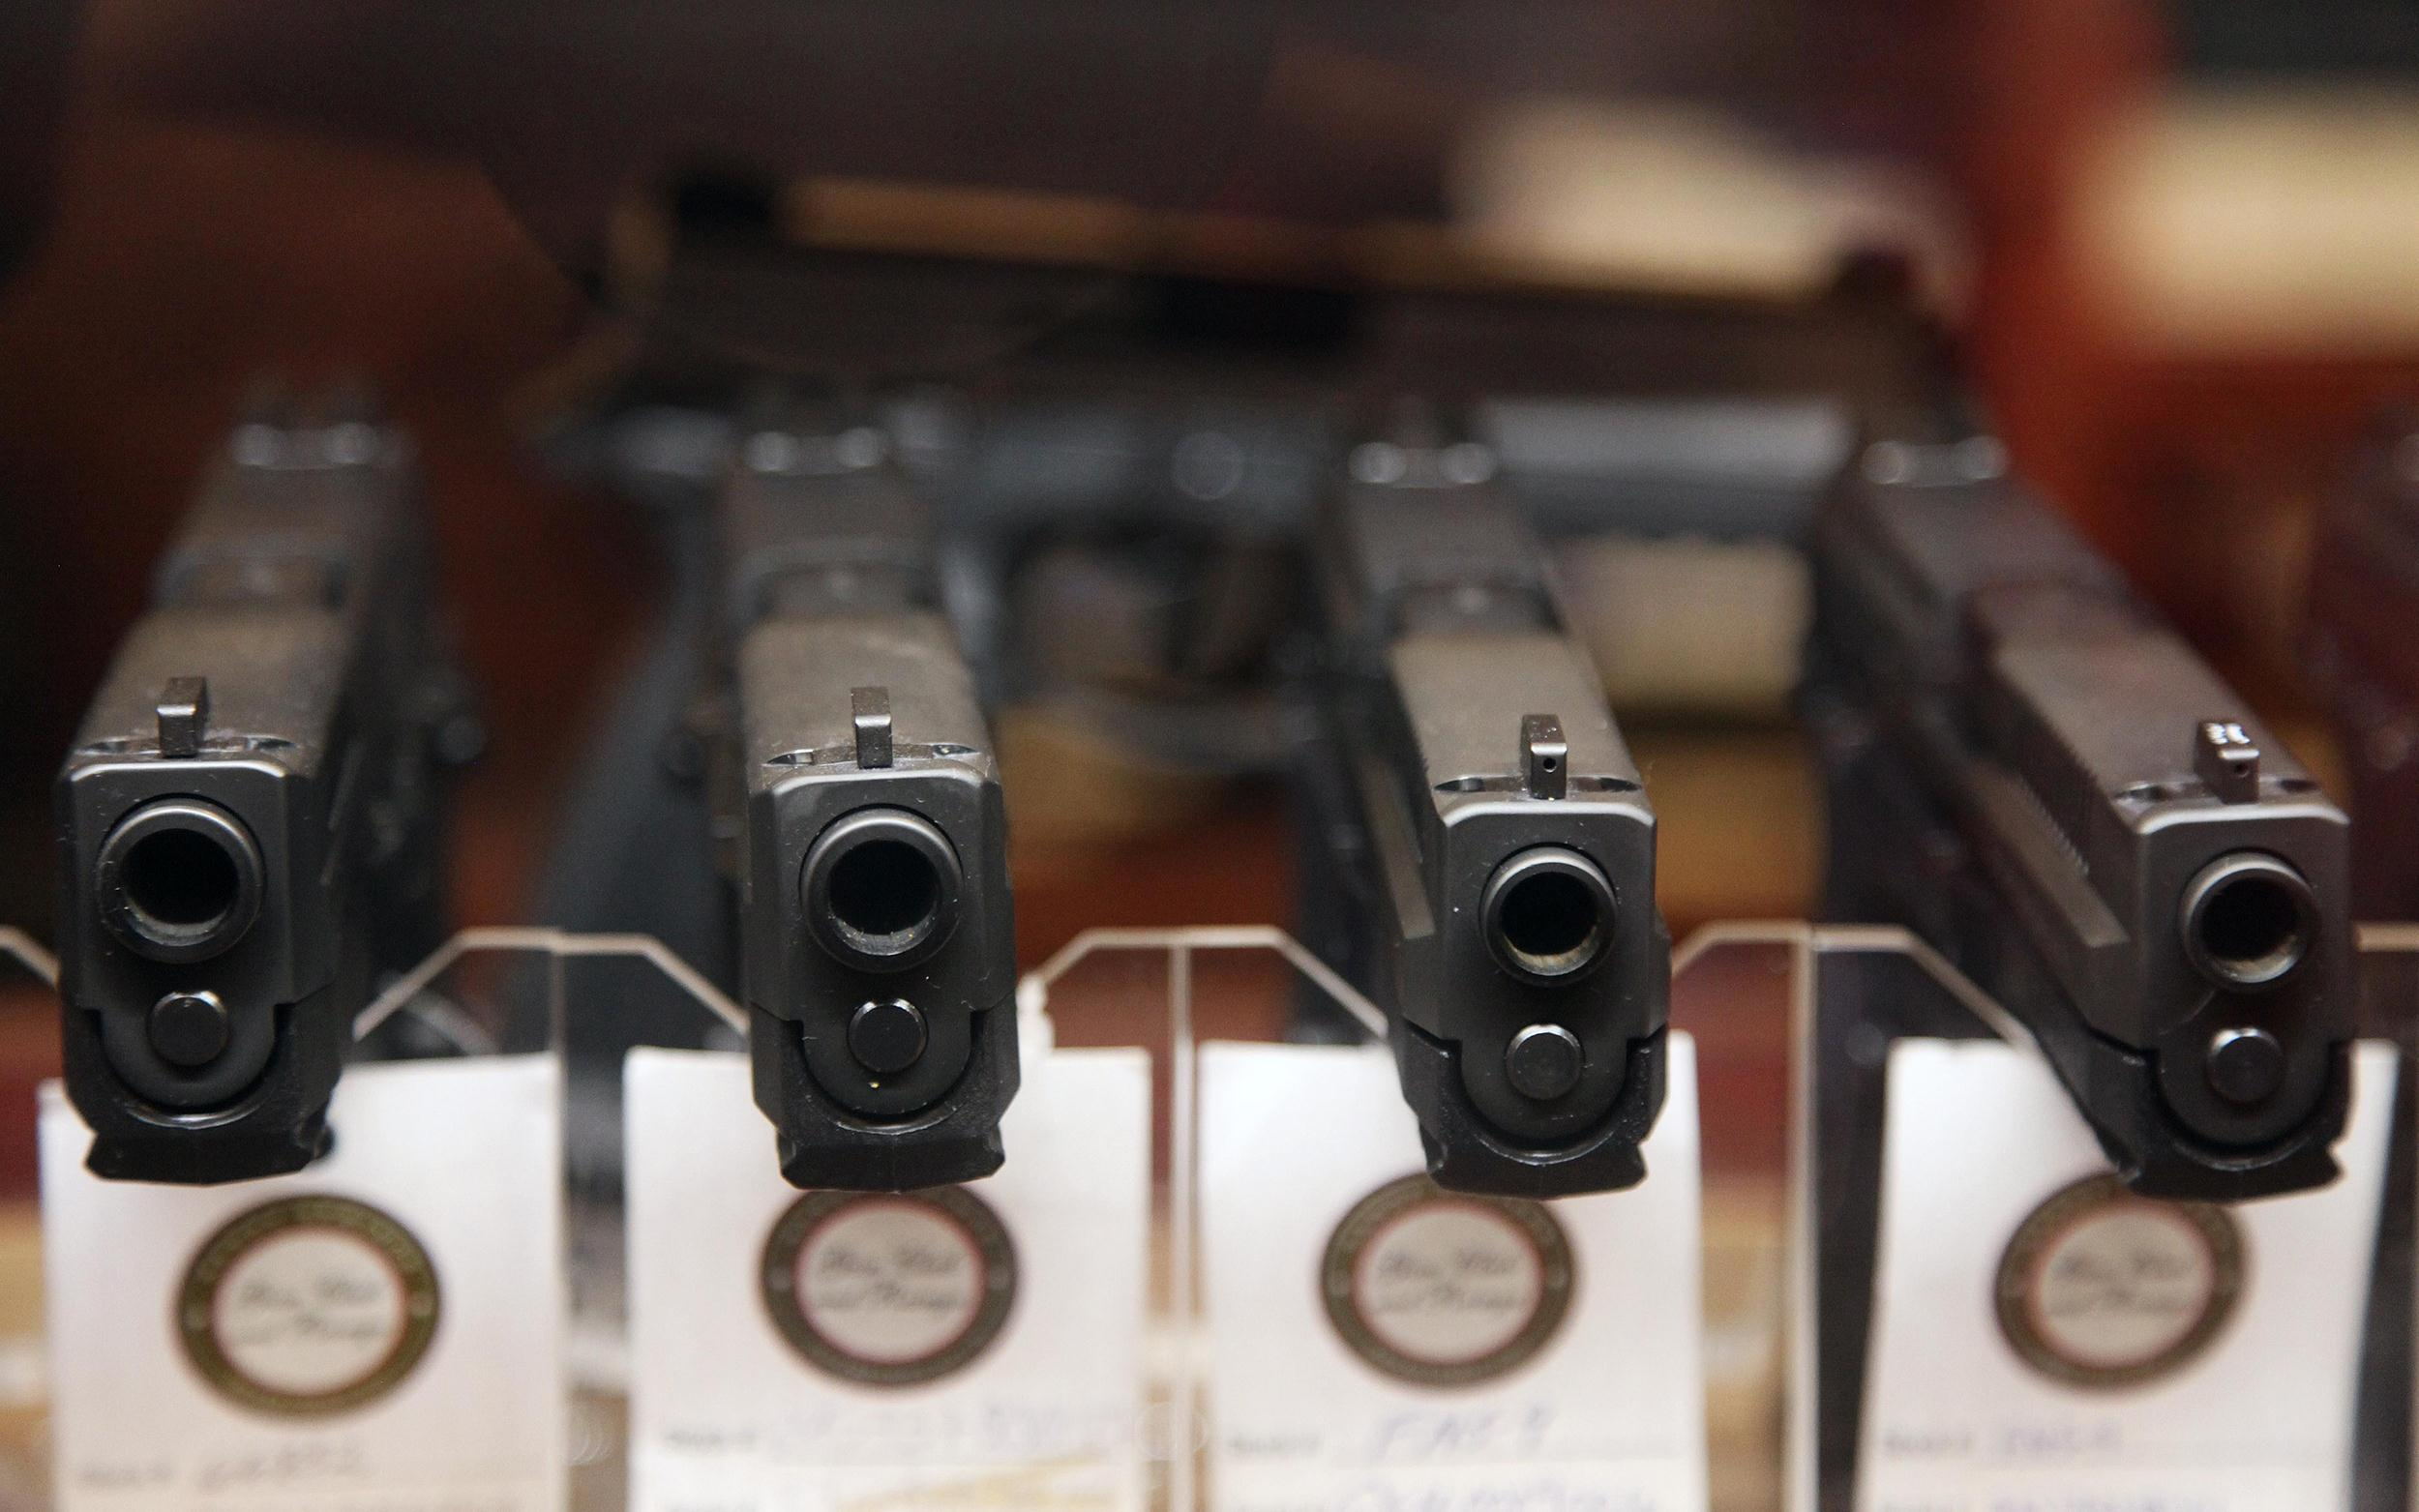 Image: Handguns are displayed in the sales area of a gun club.